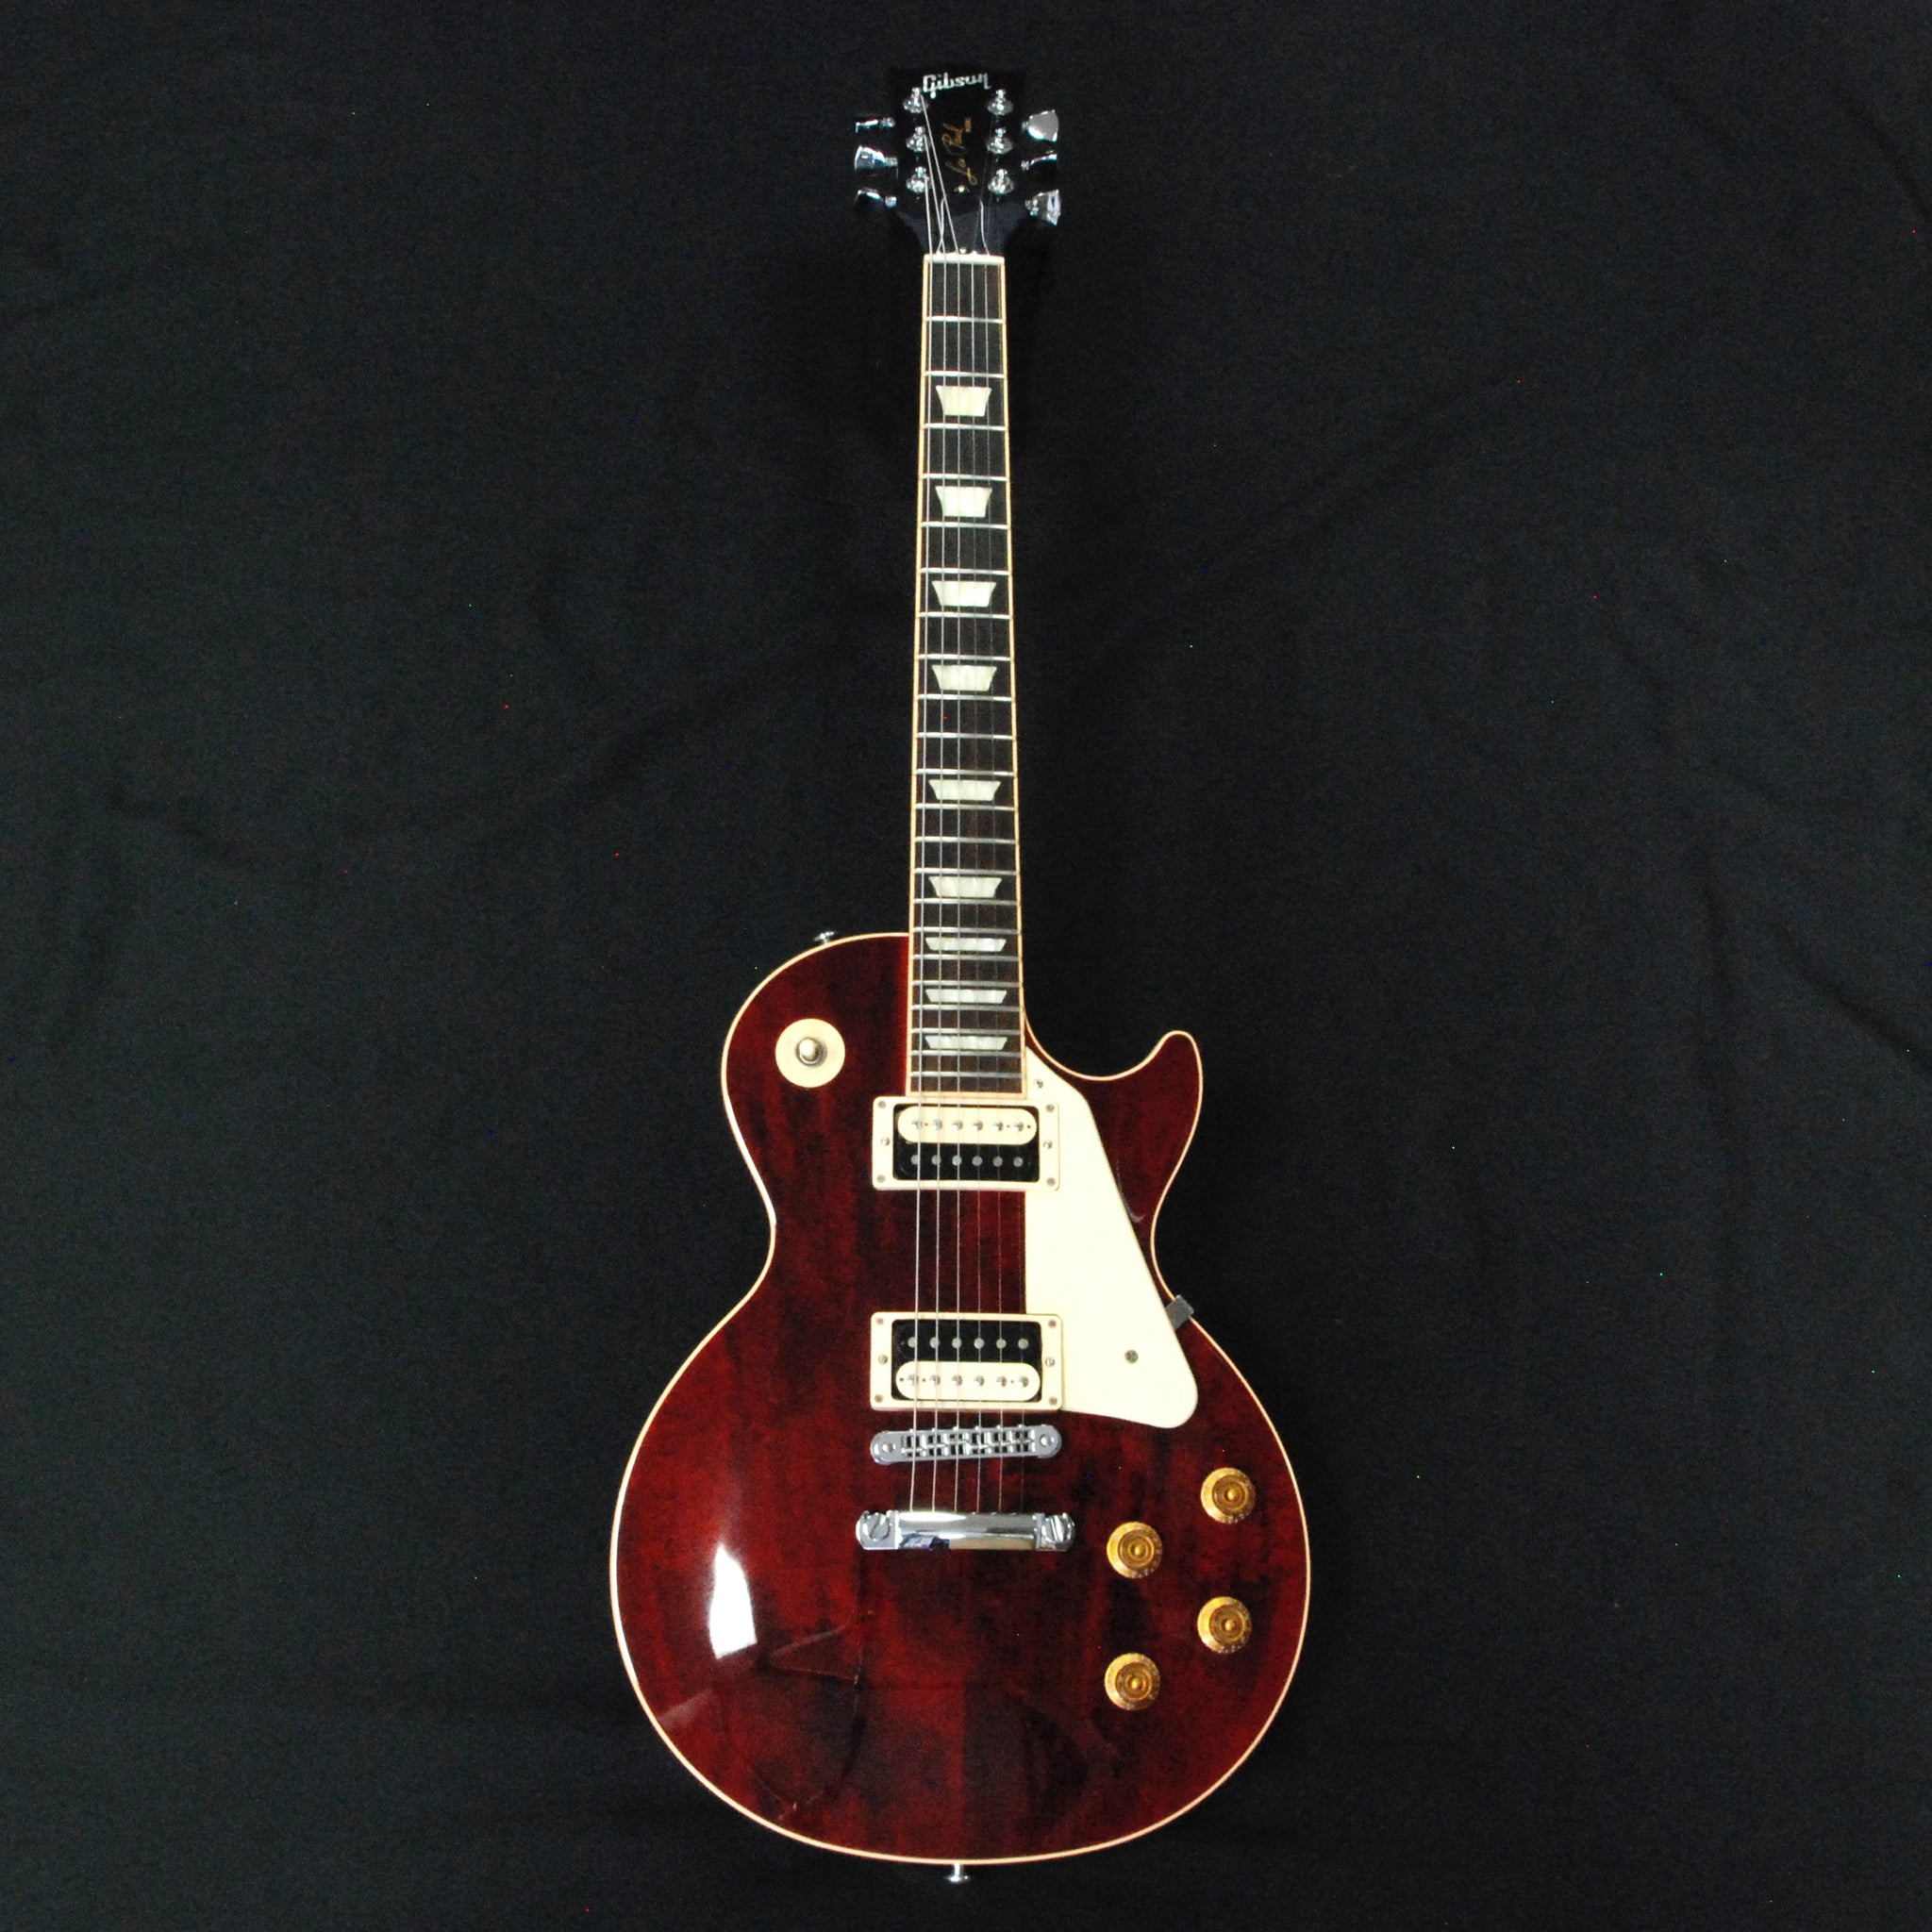 Shop online at Midlothian Music for great [product_vendor] music products like this 2015 Gibson Les Paul traditional Pro III Wine Red Excellent Condition